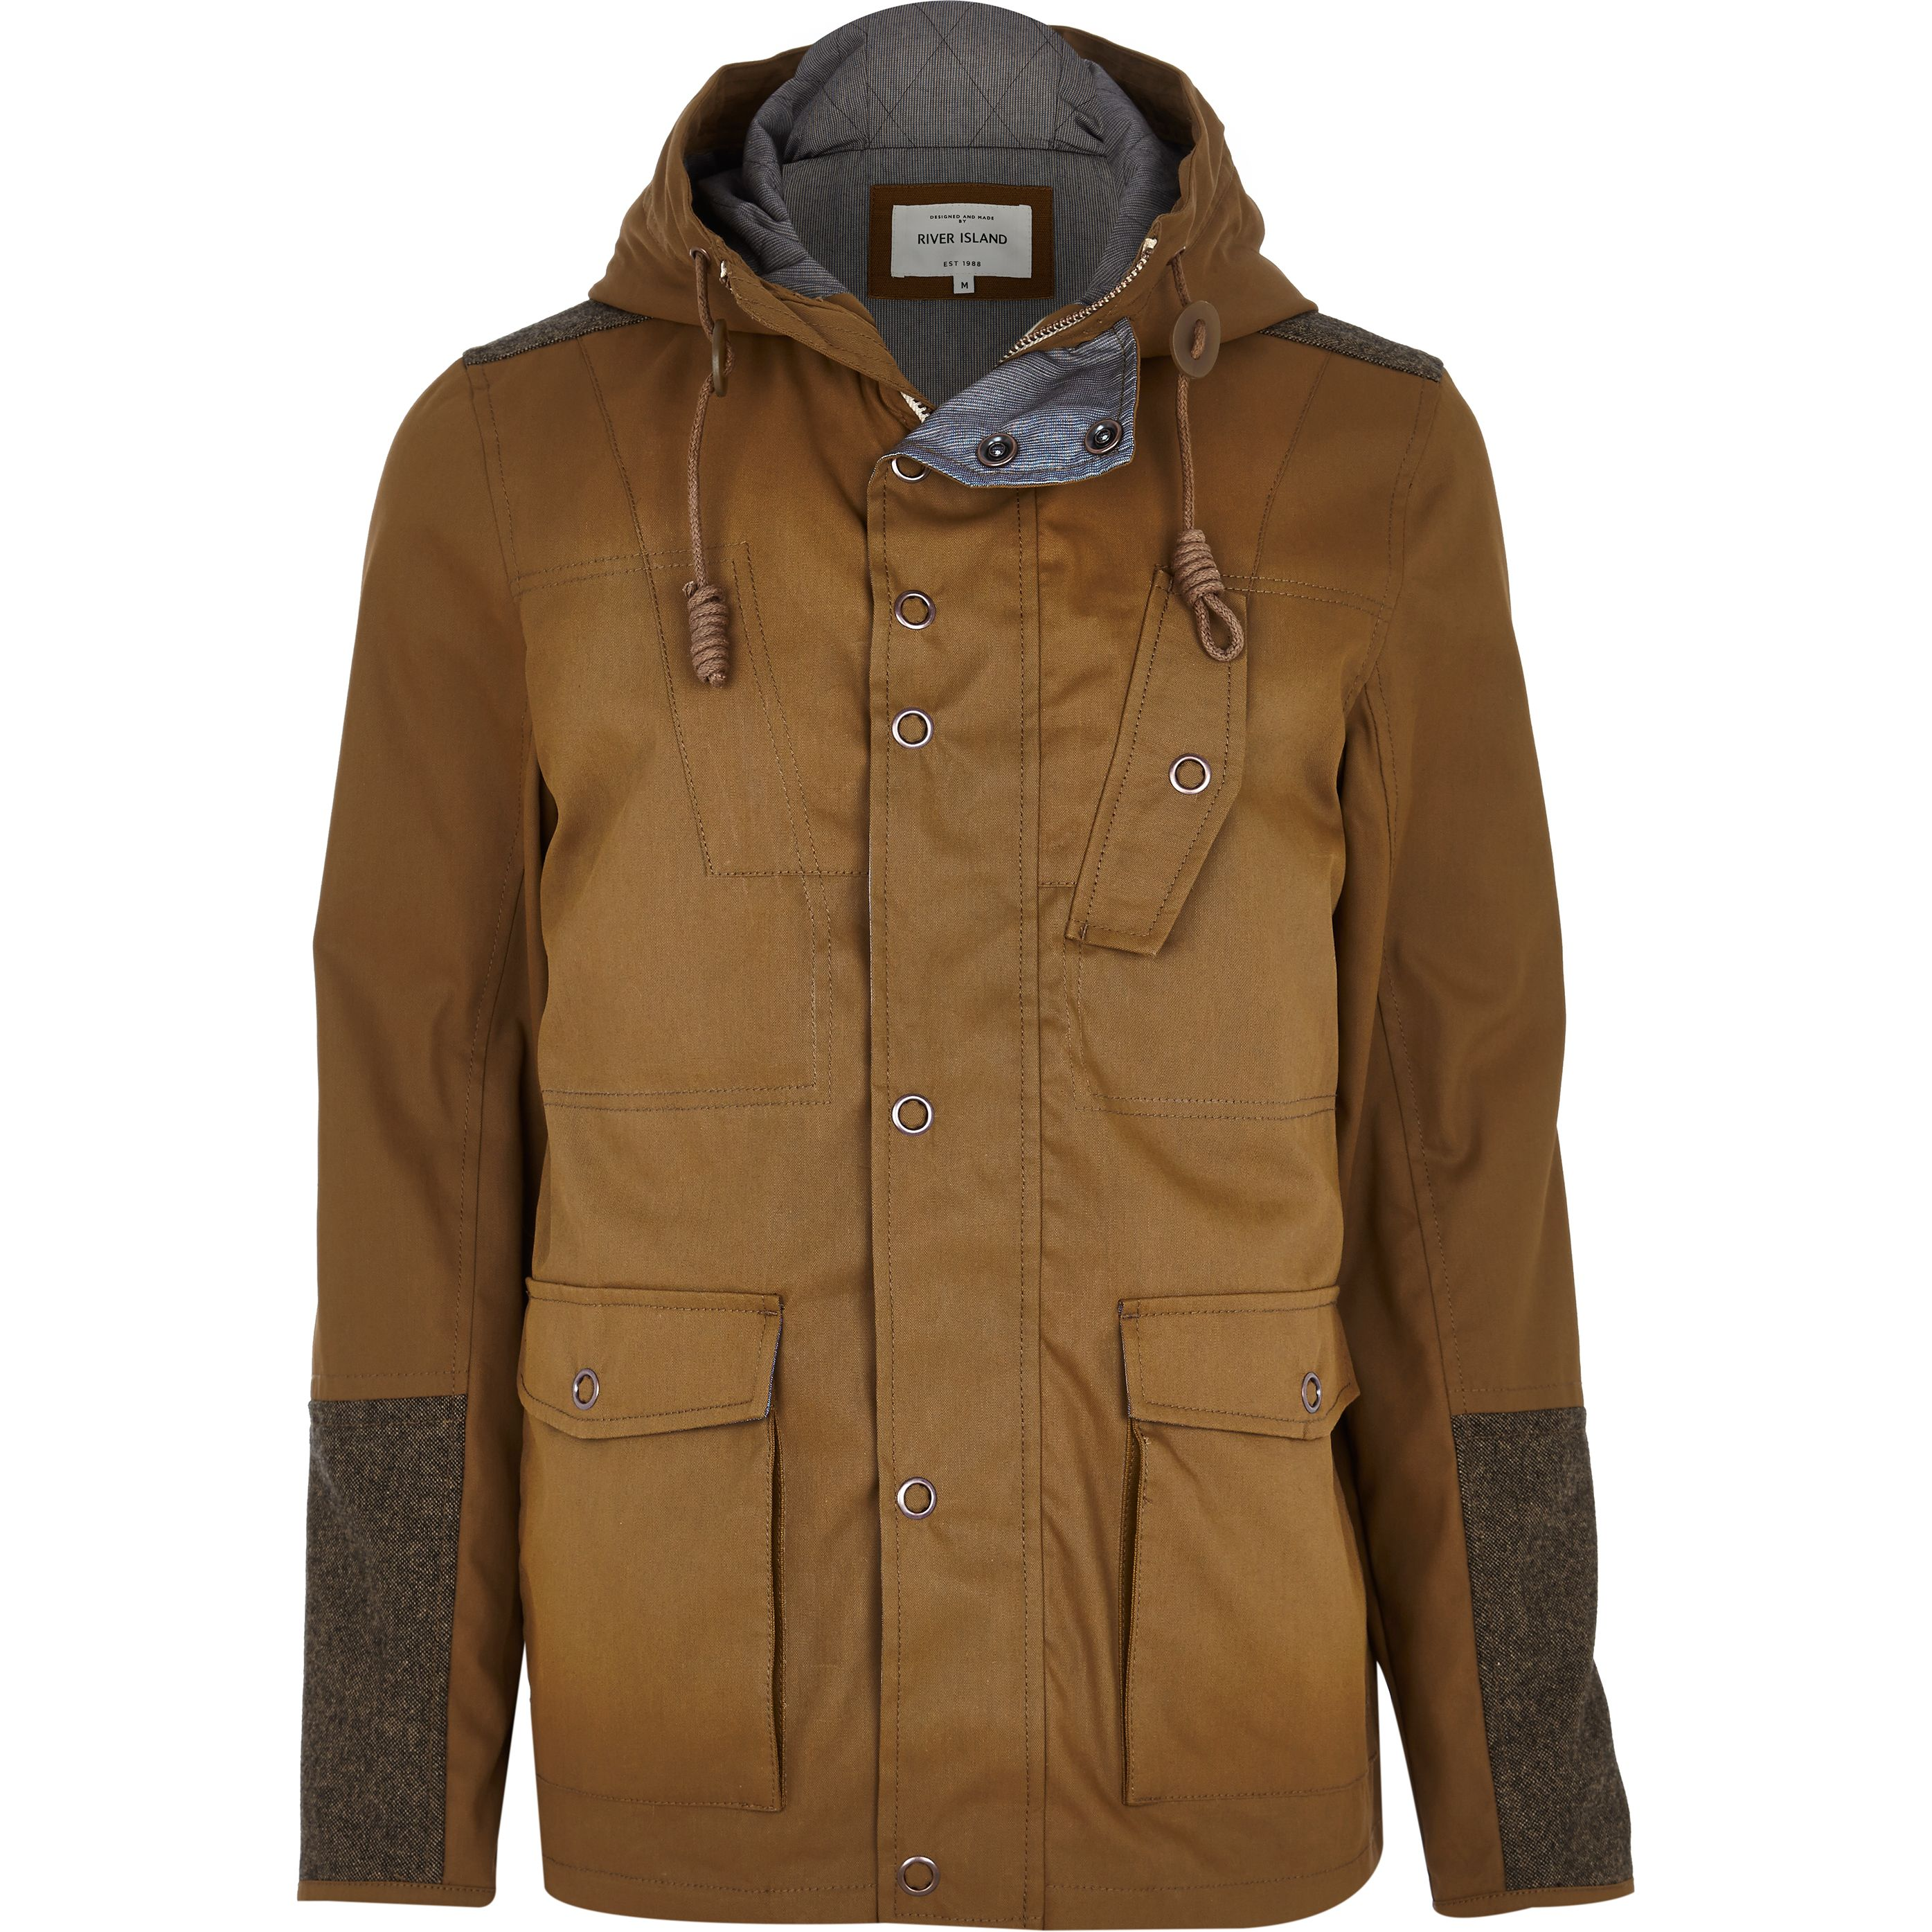 Tan Casual Jacket €85 at River Island – For the Weekend Warrior